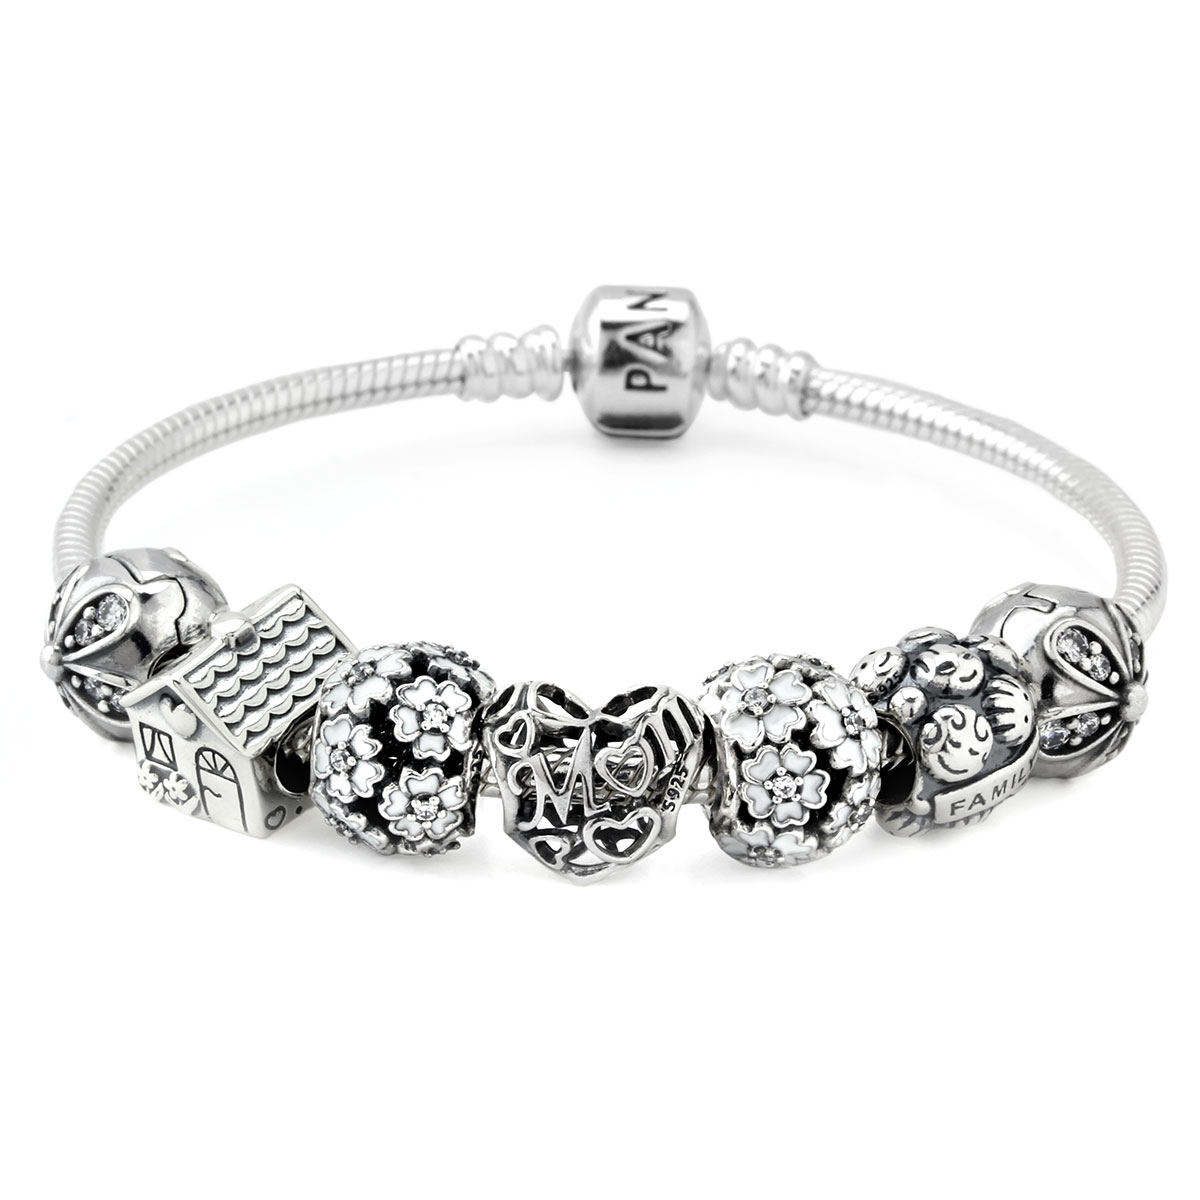 Pandora Bracelet Design Ideas find this pin and more on pandoras charm design your own photo charms Pandora Bracelet Designs Ideas